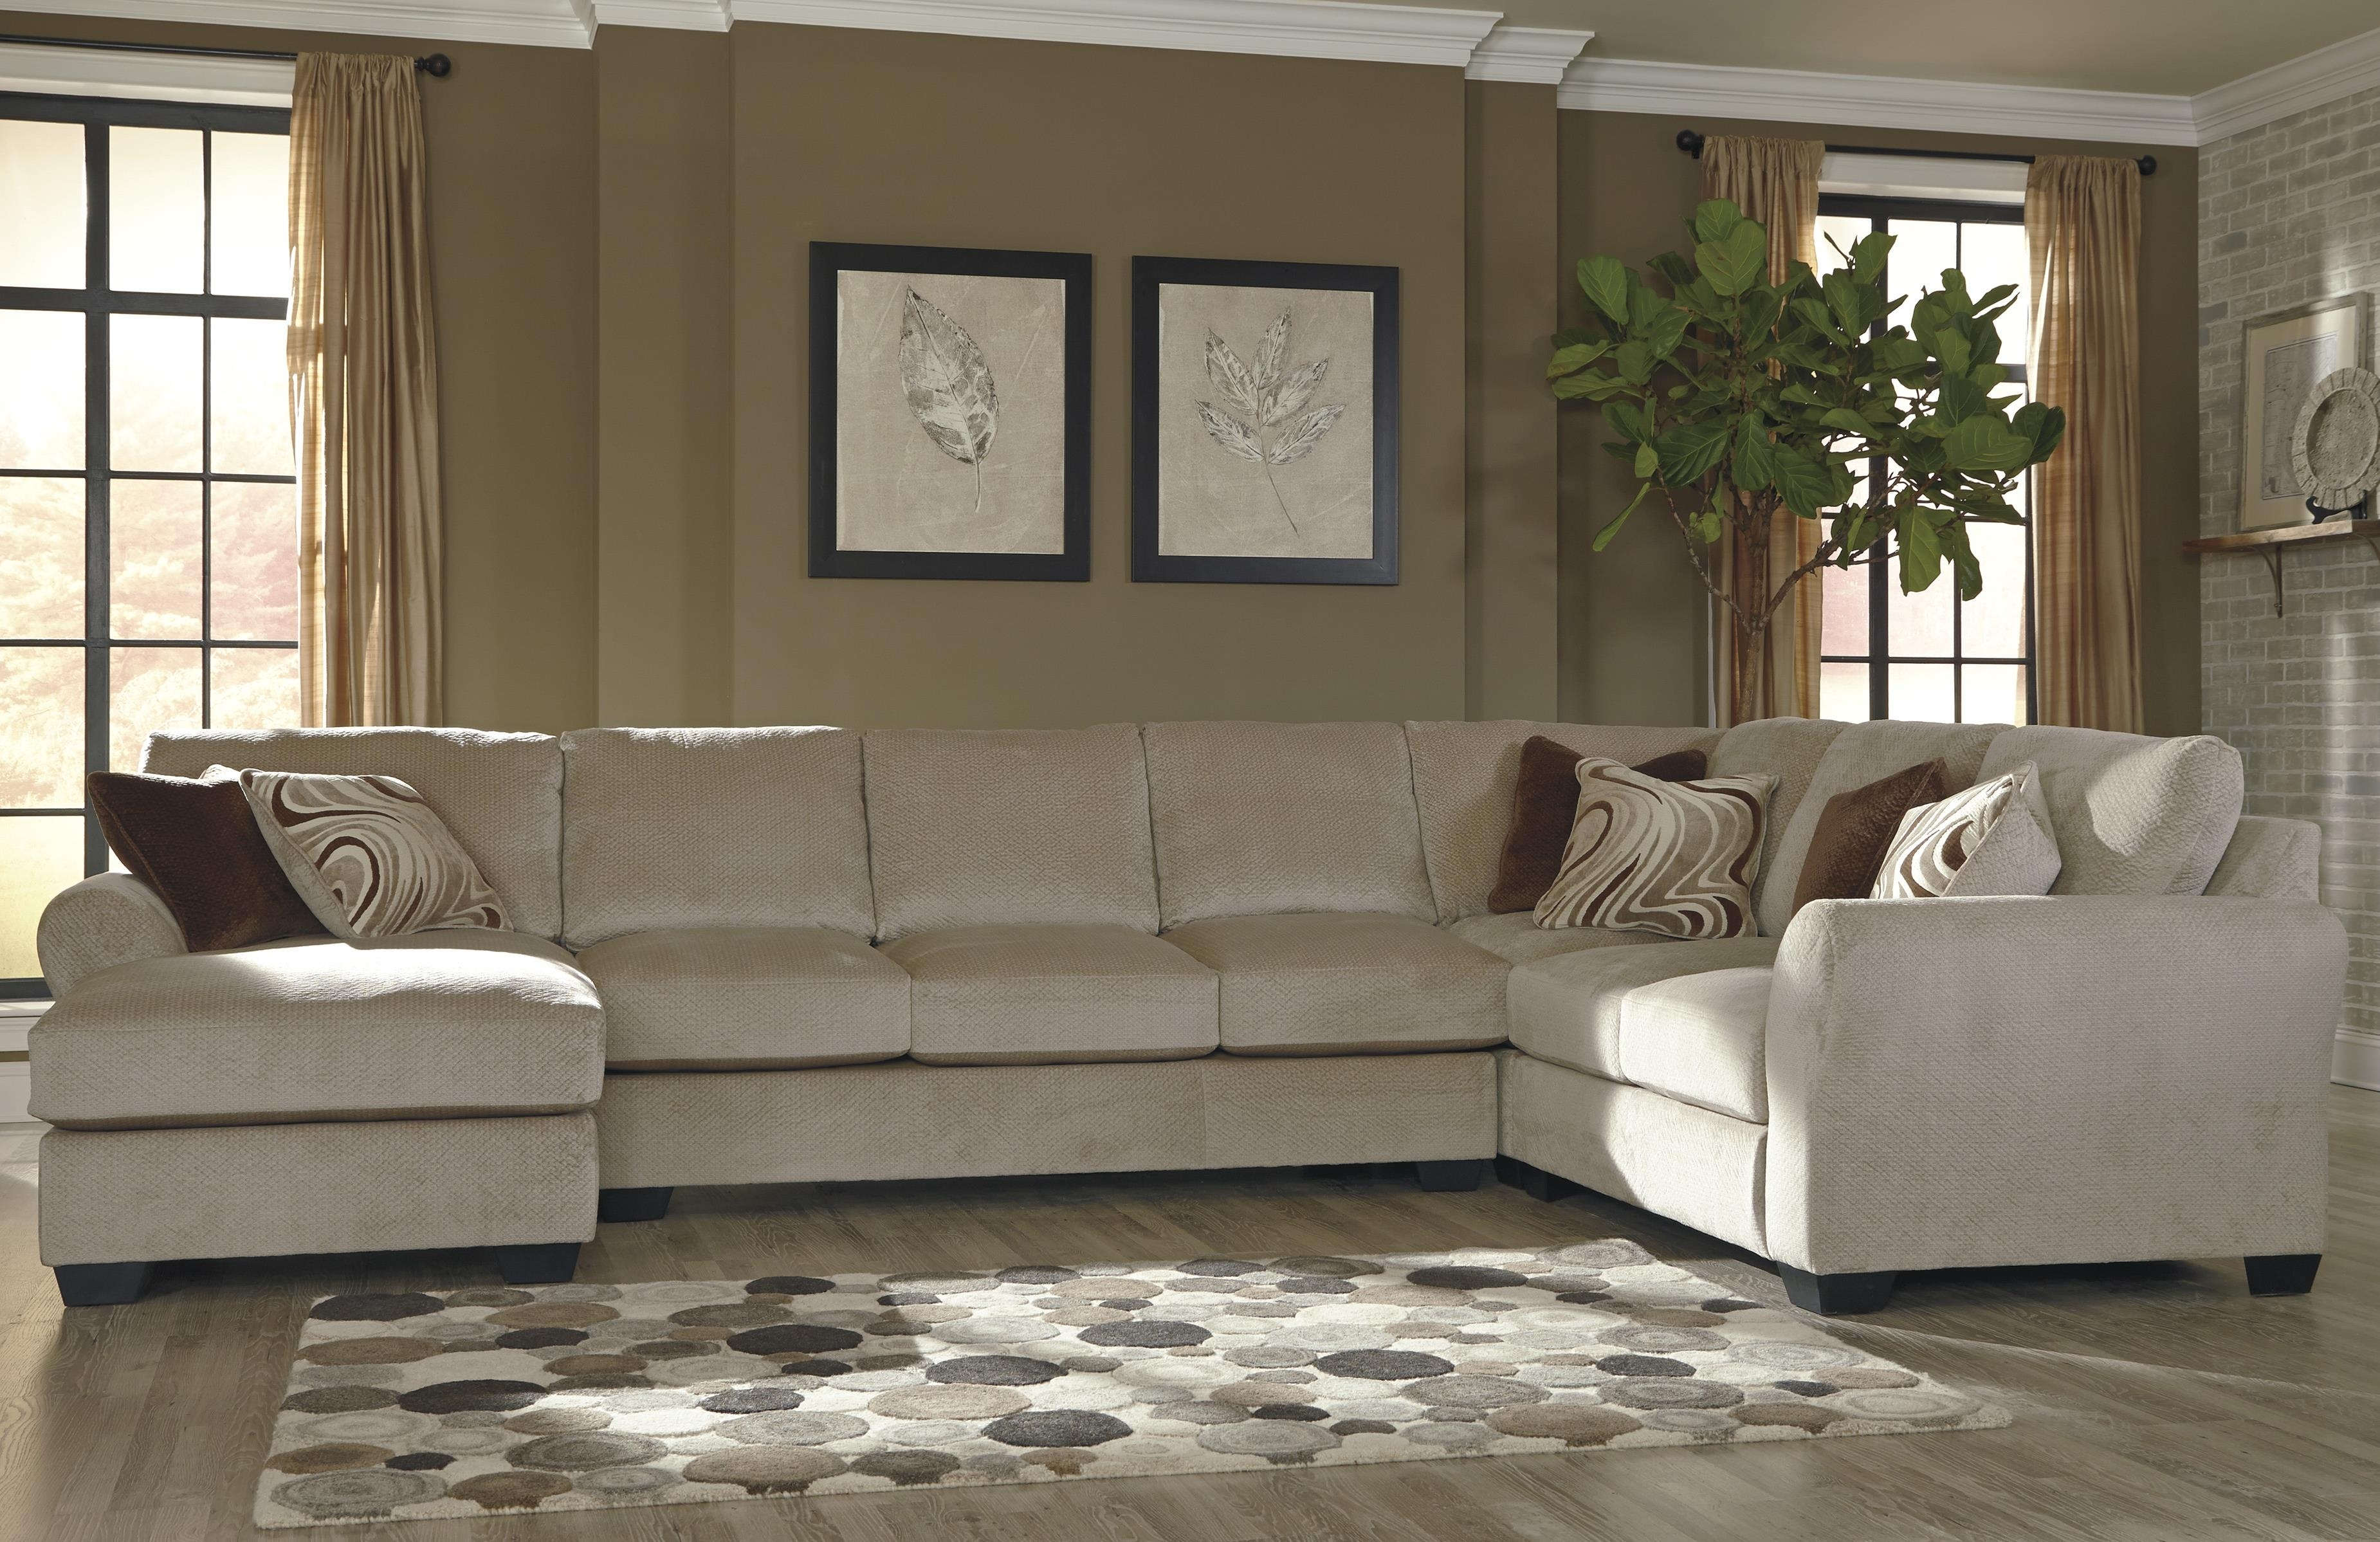 Benchcraft Hazes 4 Piece Sectional W/ Armless Sofa & Chaise In Sierra Down 3 Piece Sectionals With Laf Chaise (View 4 of 30)